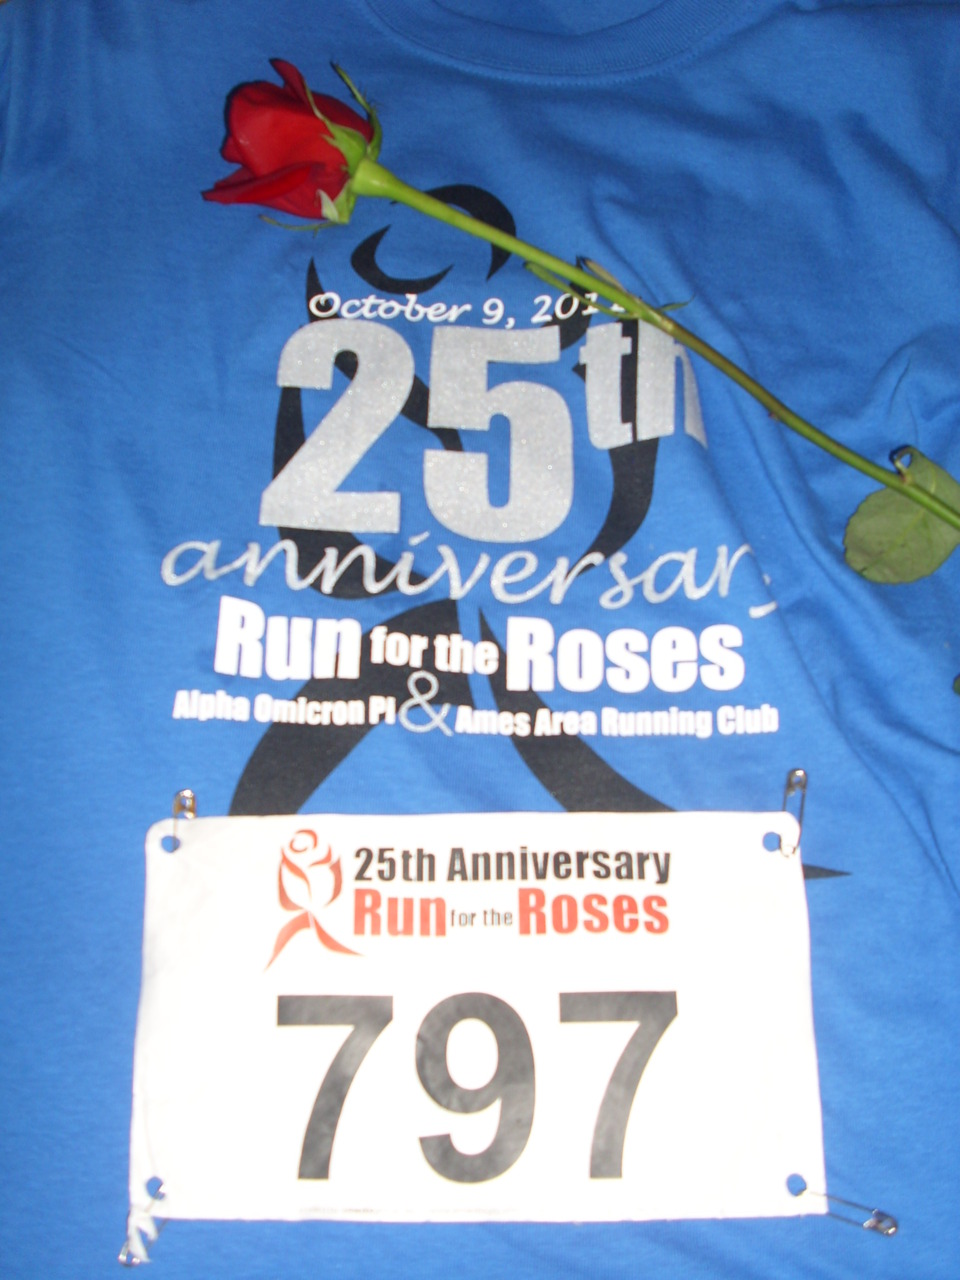 Obsession: Run for the Roses